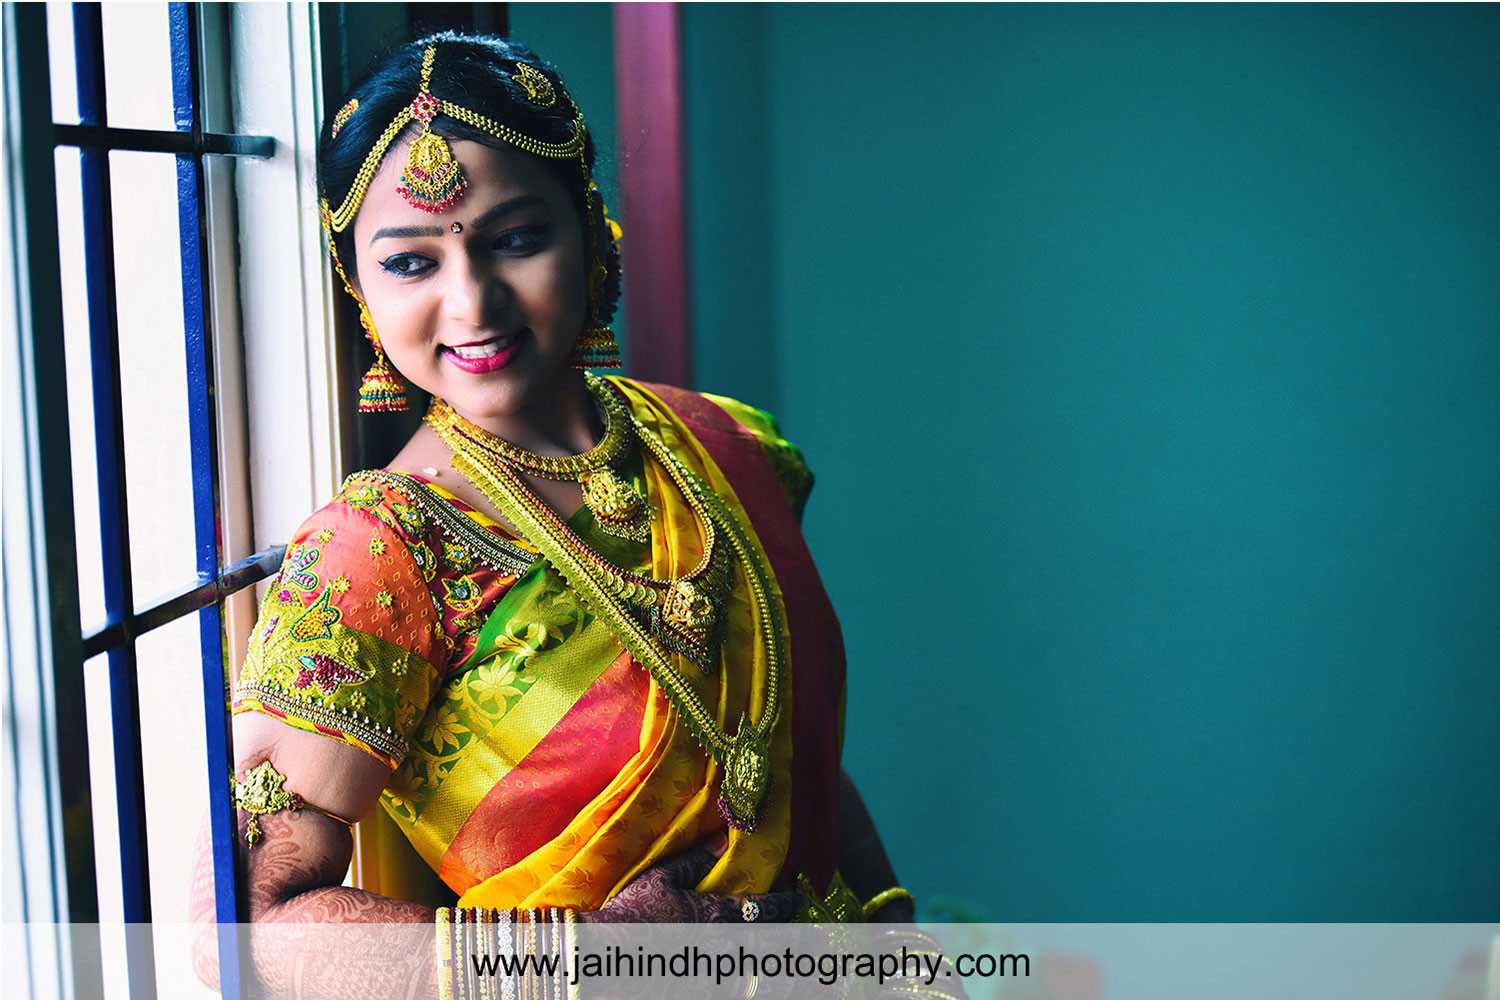 Bridal Makeup Artist In Madurai, Best Bridal Makeup In Madurai, Makeup Artist In Madurai, Wedding Bridal Design In Madurai